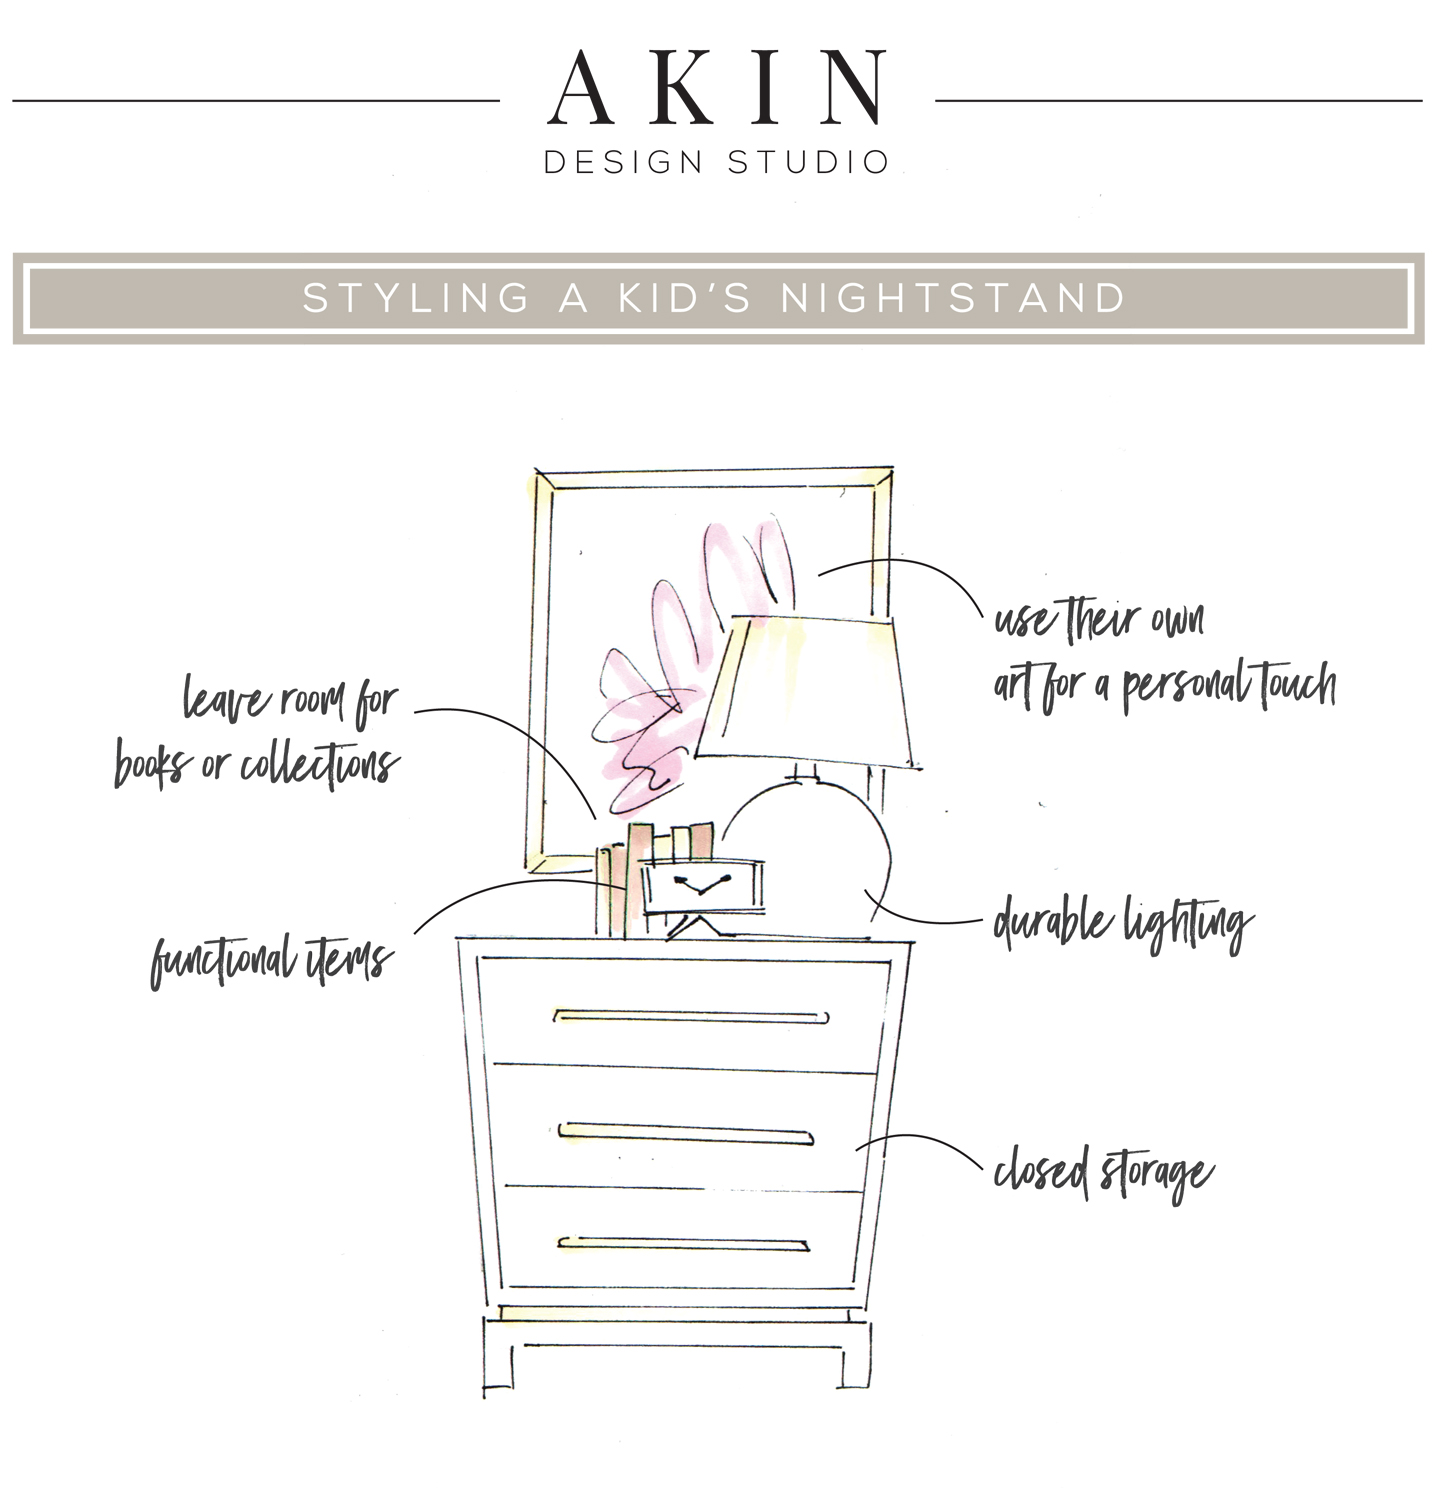 How to Style a Kid's Nightstand | Akin Design Studio Blog